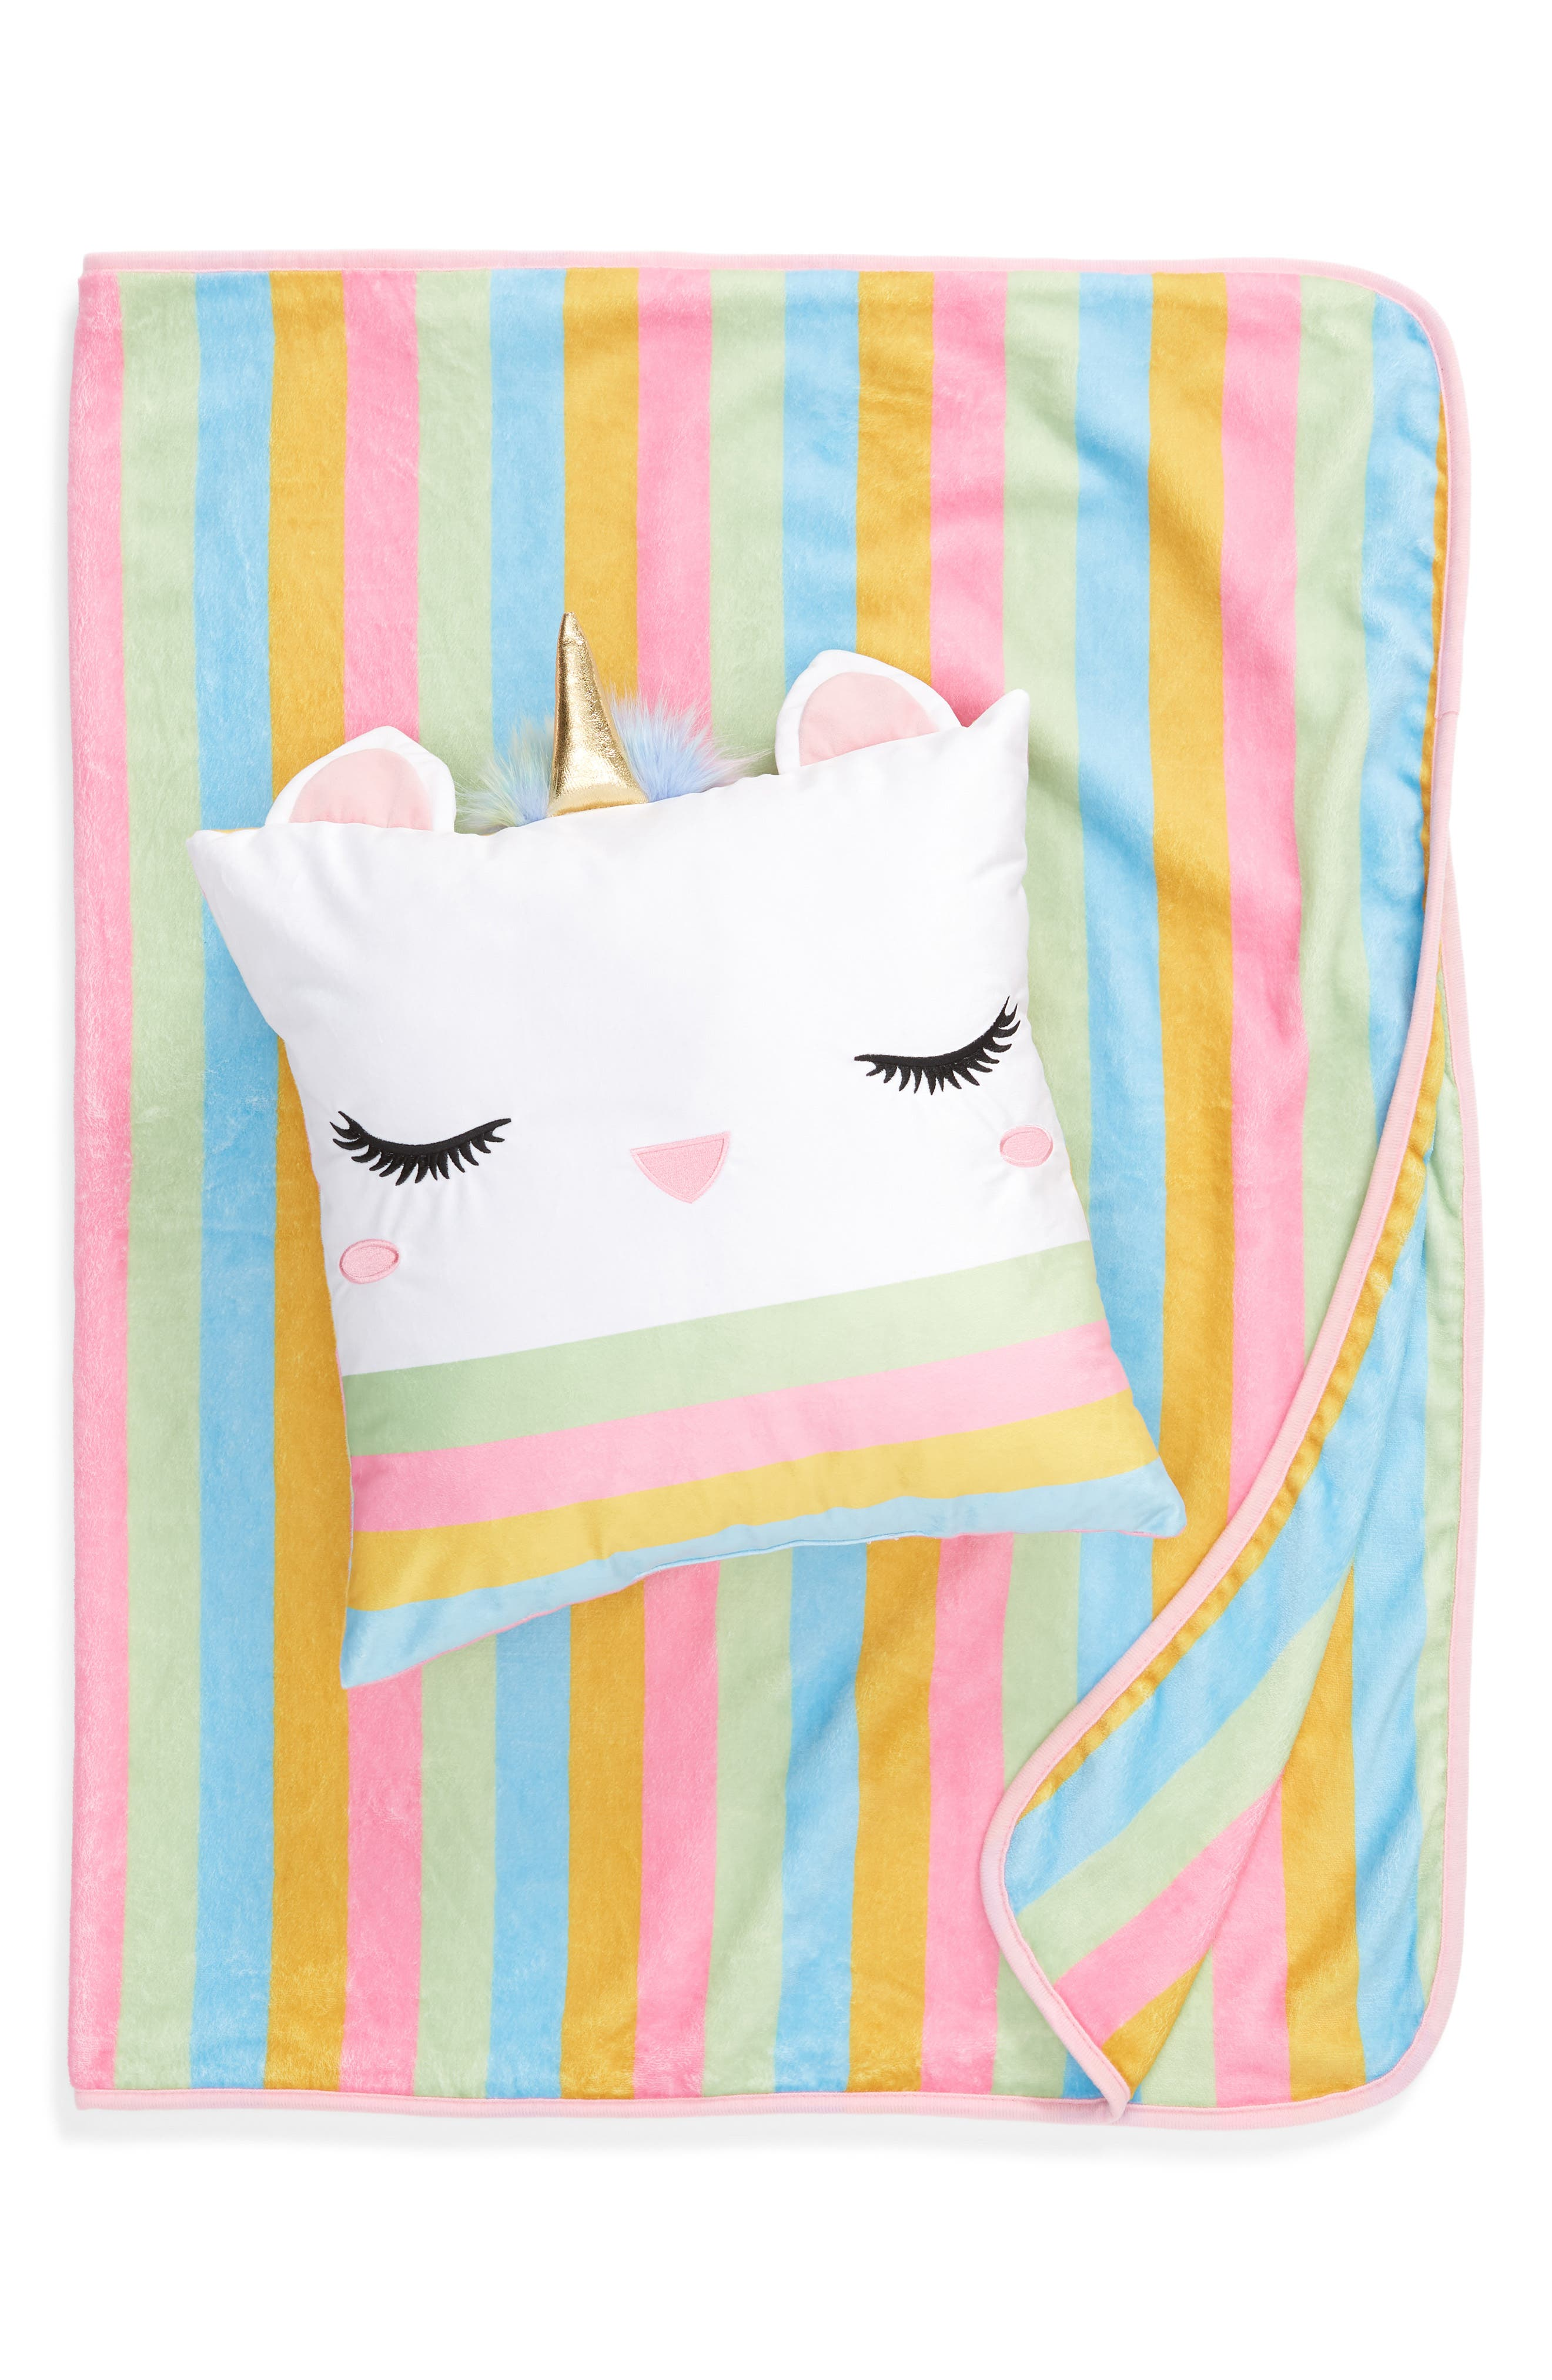 Caticorn Pillow & Throw Set,                             Main thumbnail 1, color,                             CATICORN